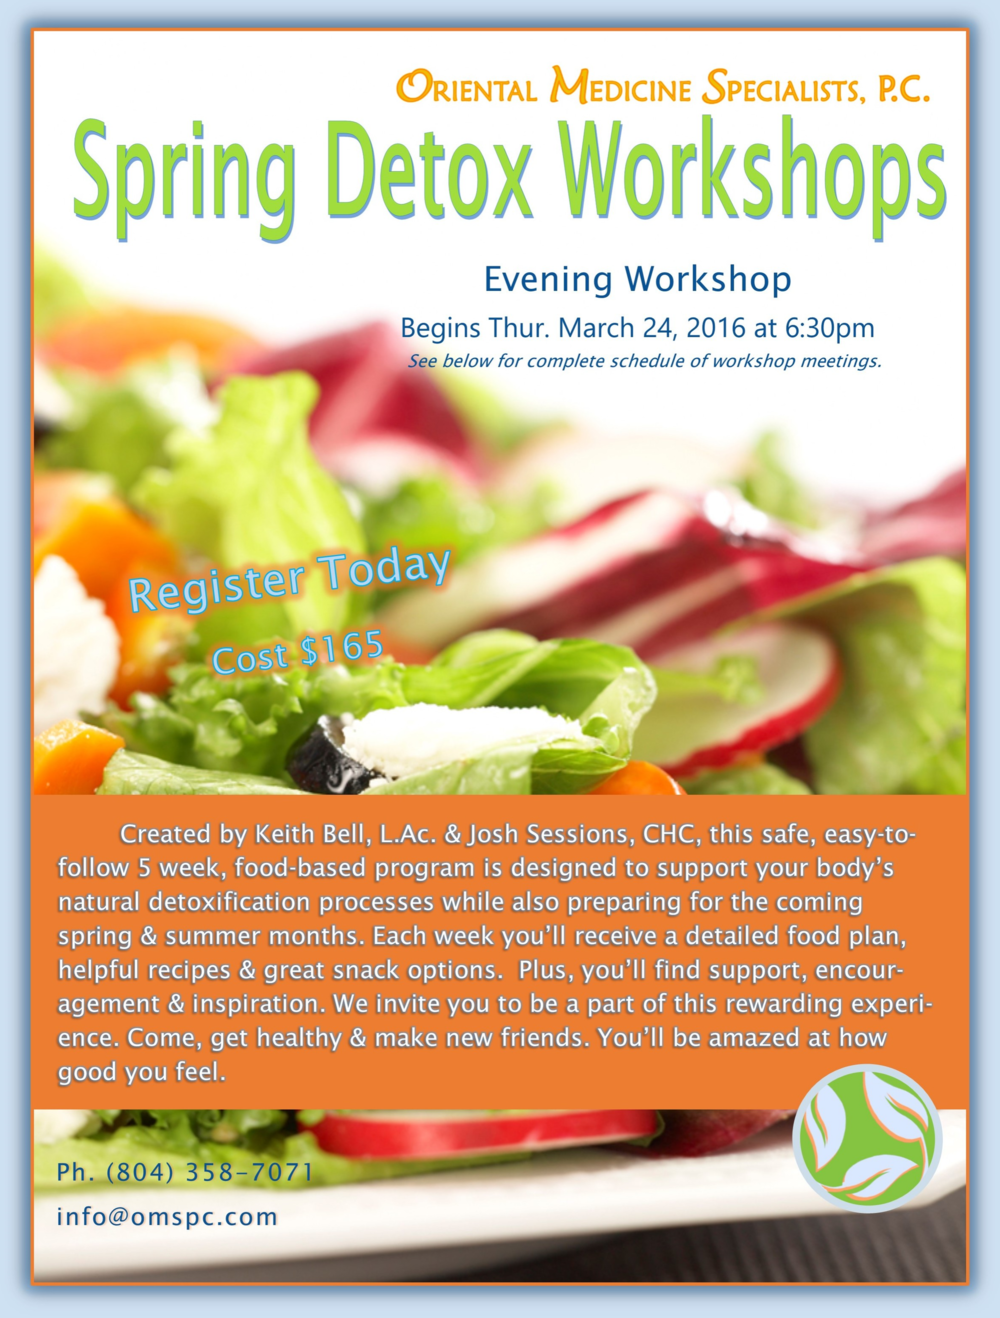 Learn more about our Spring Detox Program Here.